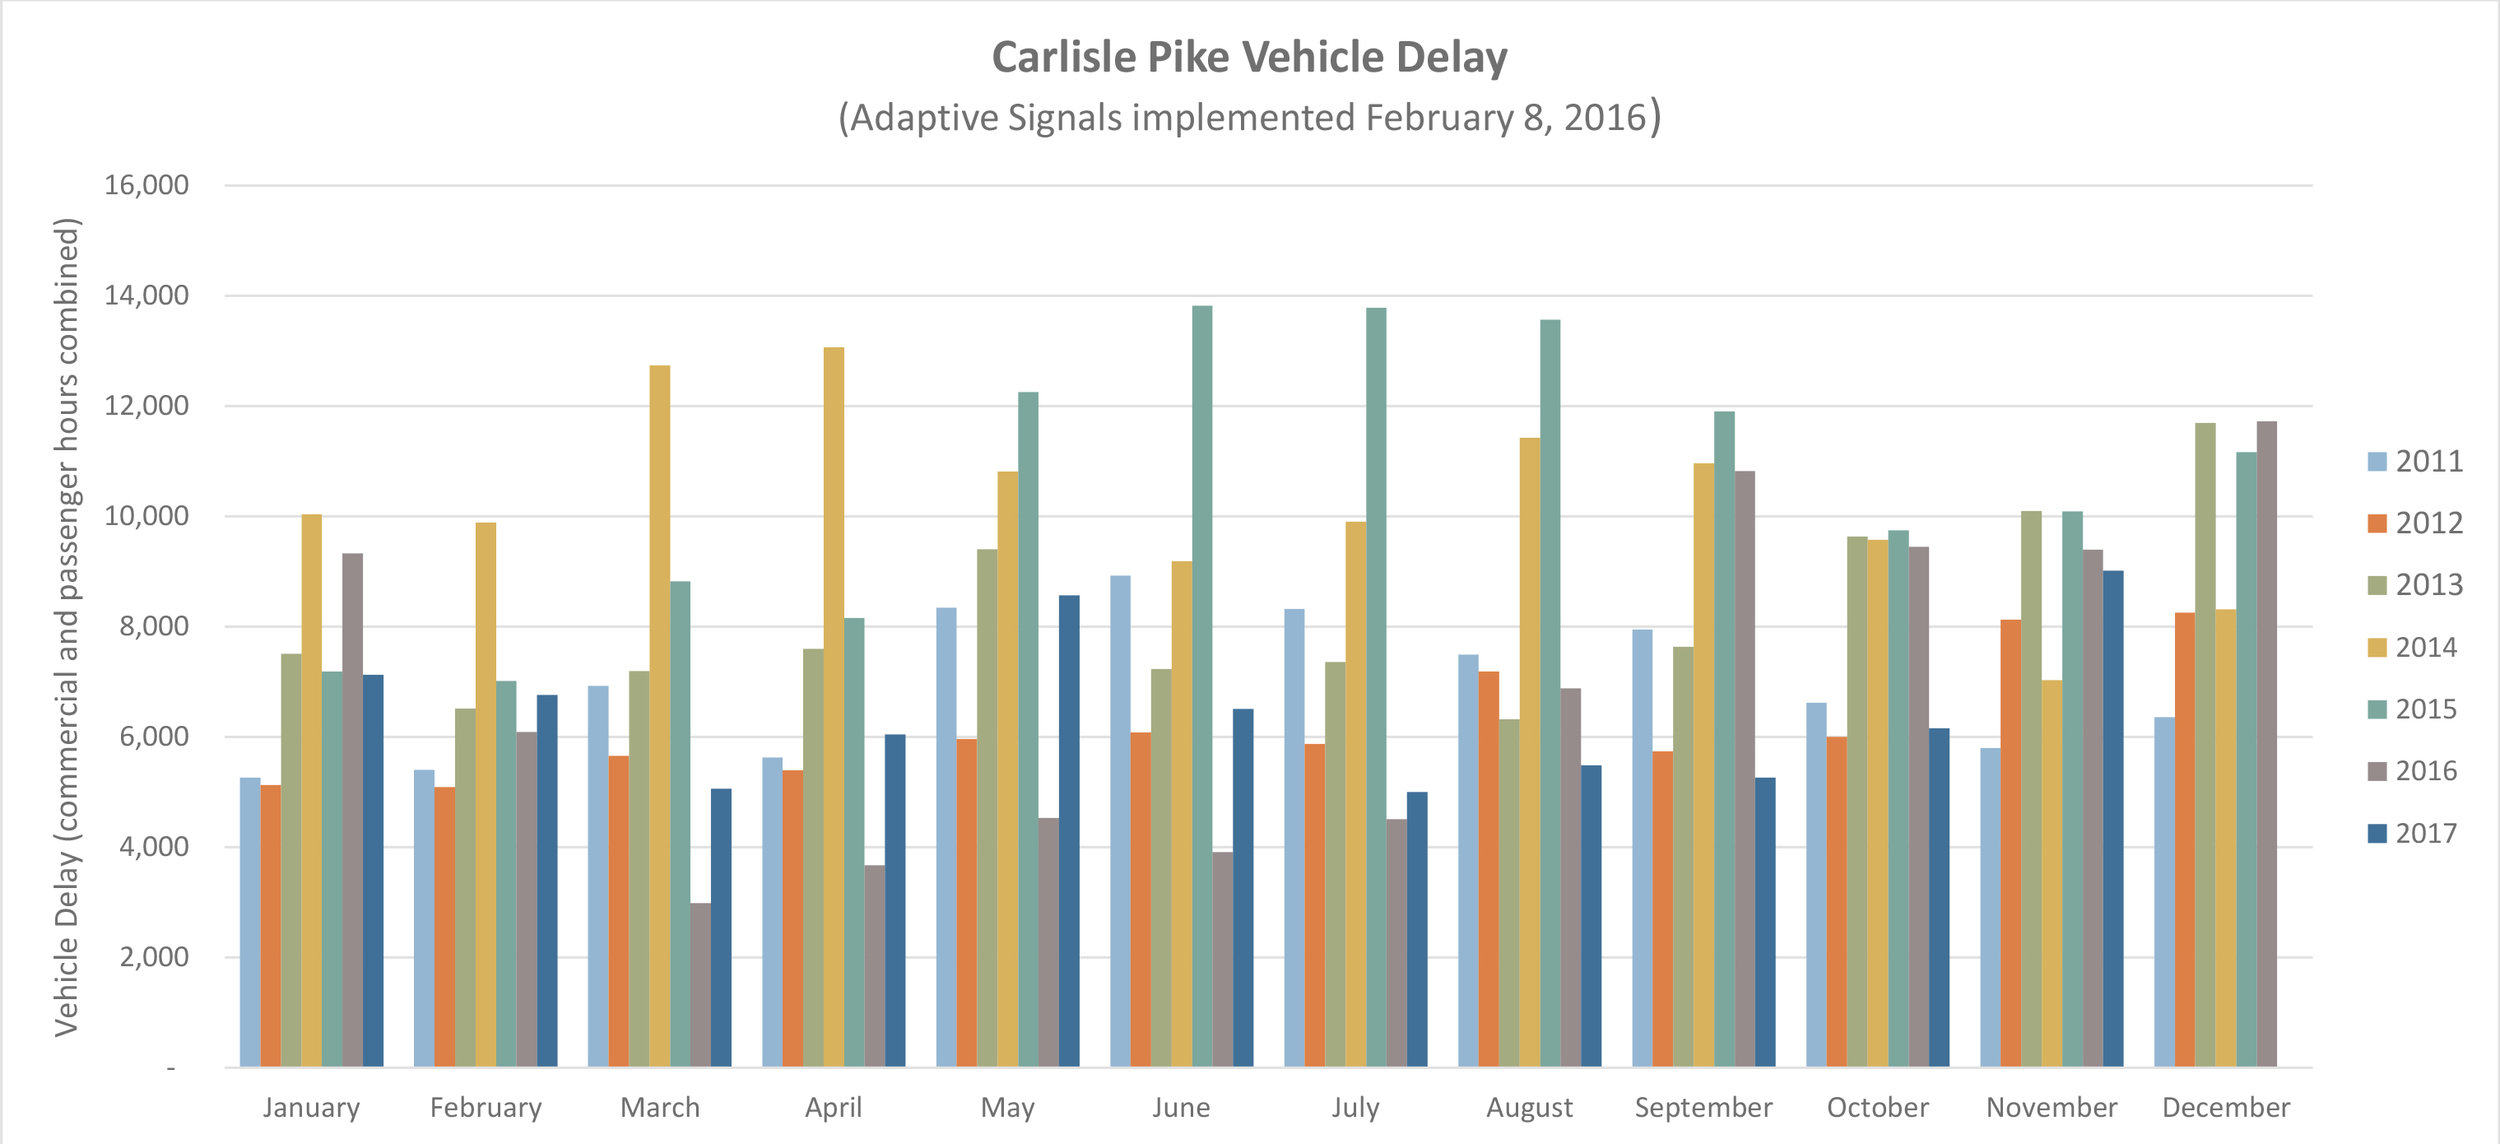 Carlisle Pike Vehicle Delay - Click for larger image